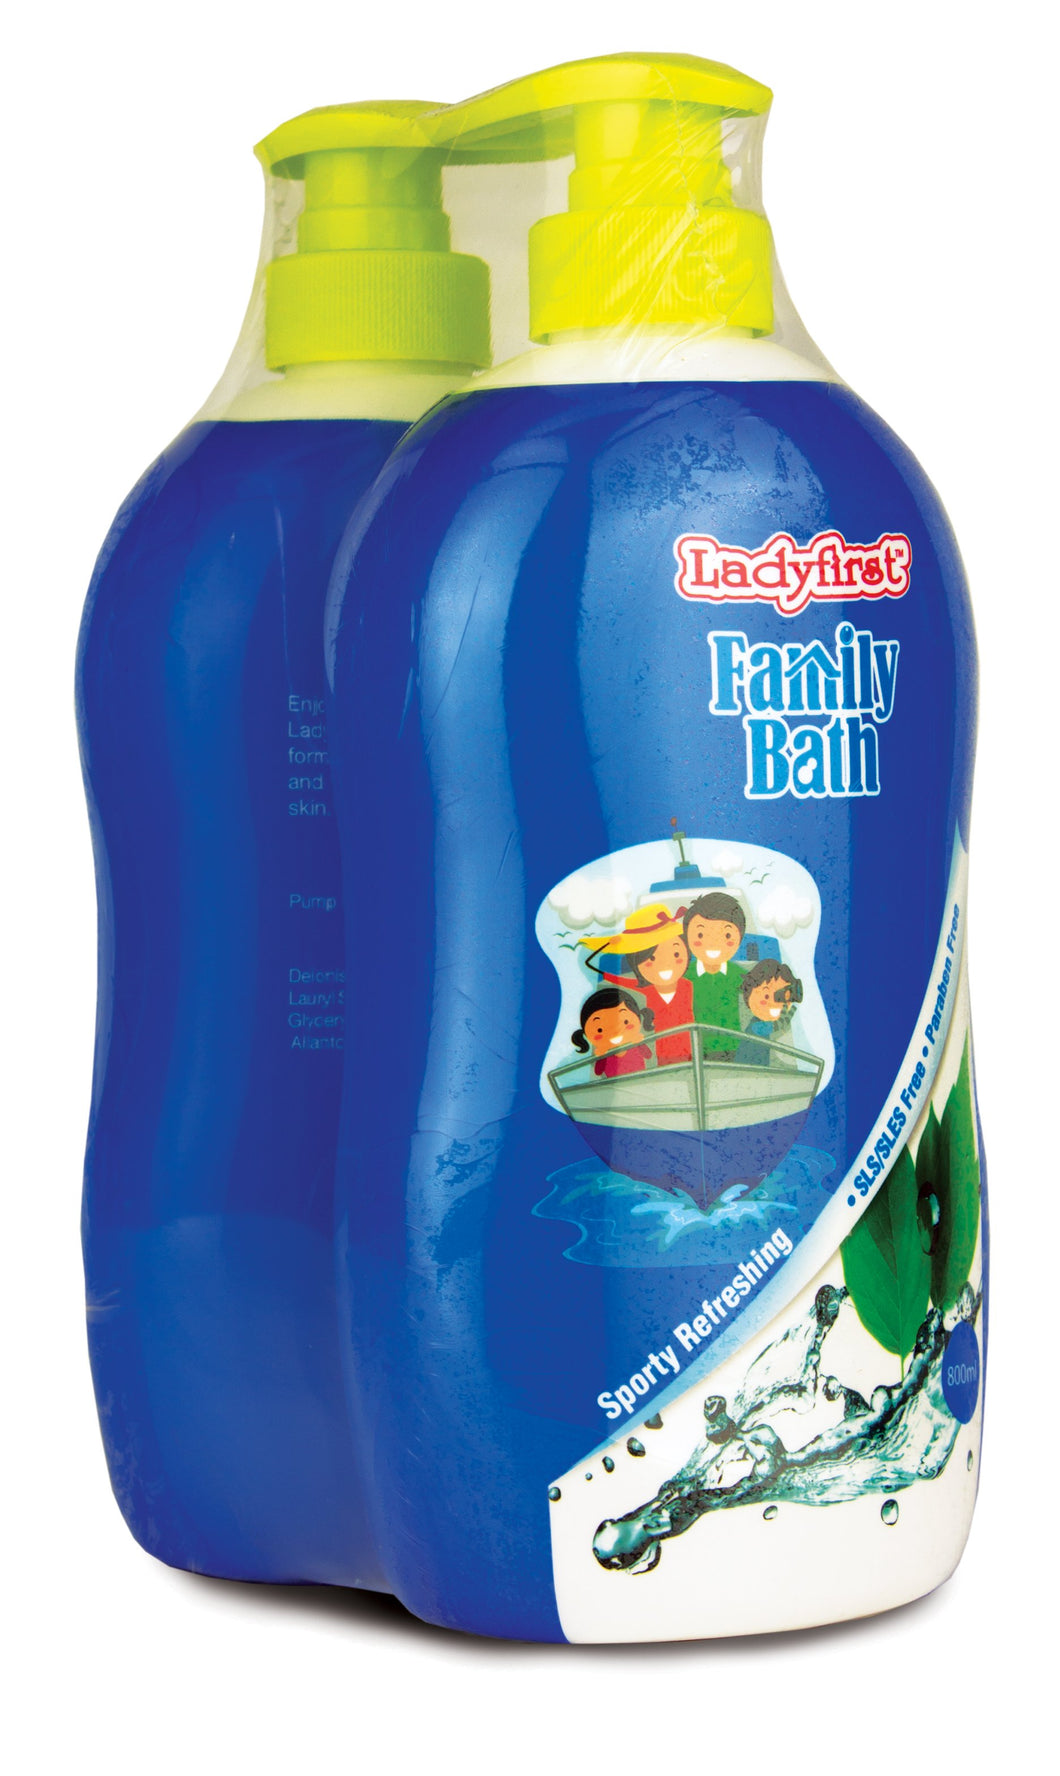 Ladyfirst Family Bath Sporty Refreshing Twin Pack